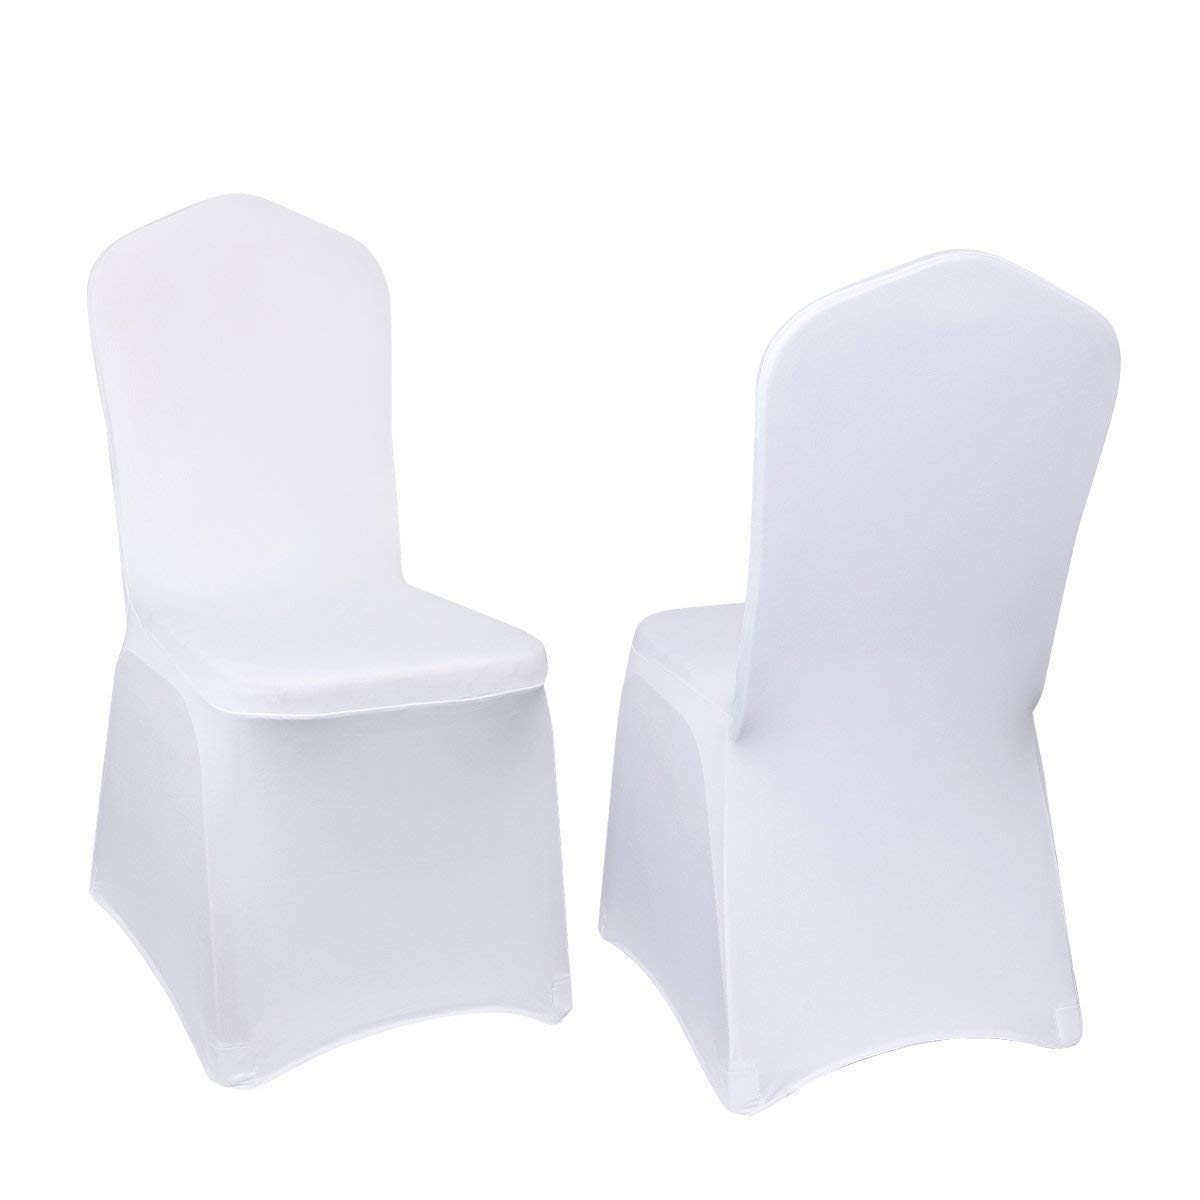 Astonishing Vevor 100 Pcs White Chair Covers Polyester Spandex Chair Cover Stretch Slipcovers For Wedding Party Dining Banquet Chair Decoration Covers Flat Chair Inzonedesignstudio Interior Chair Design Inzonedesignstudiocom